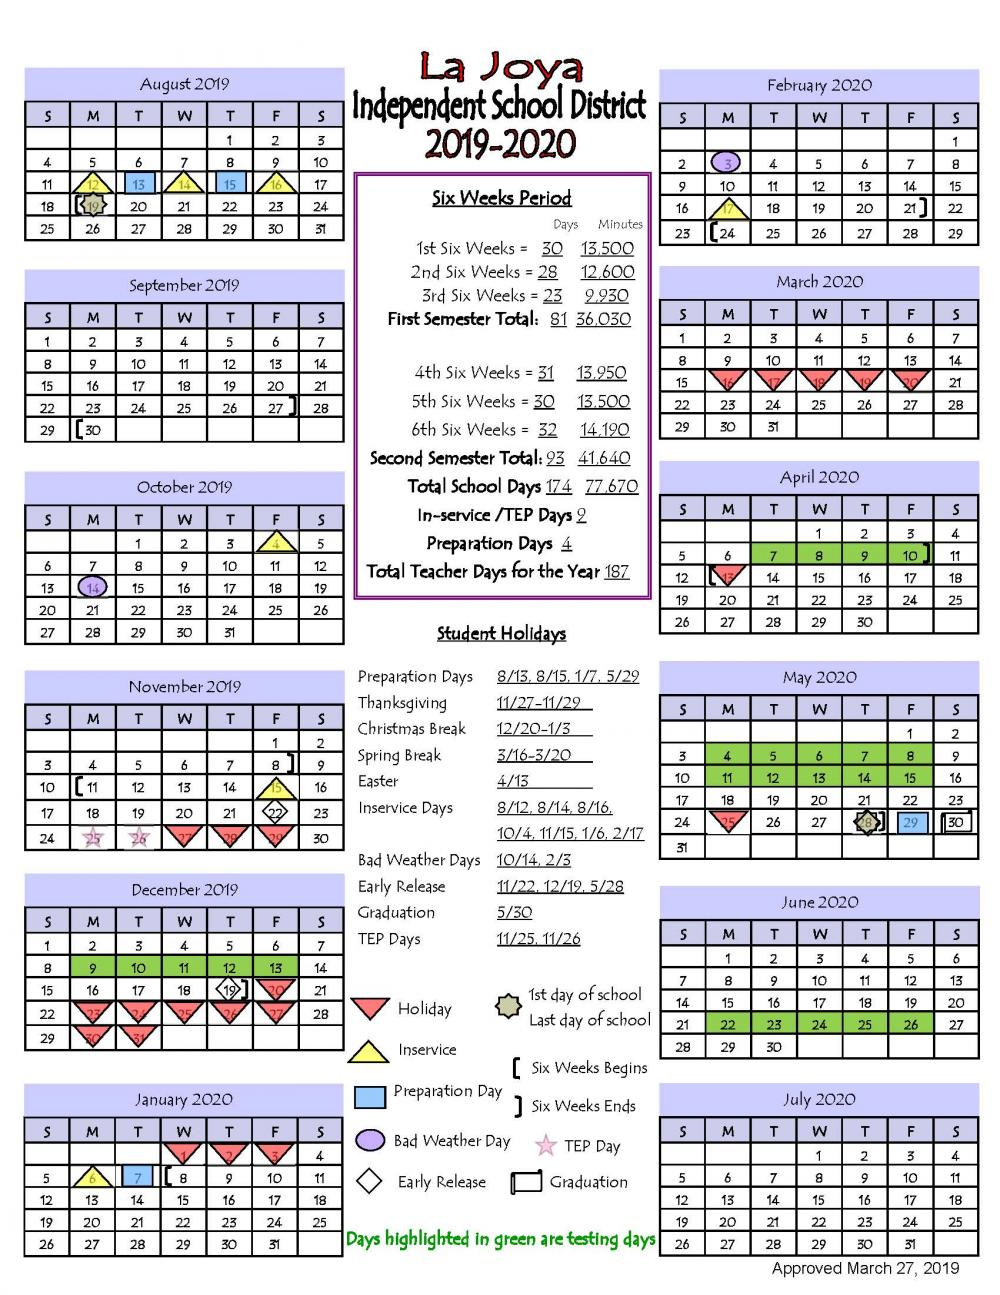 La Joya Isd – Slide Show Articles In La Joya Independent School District Calendar